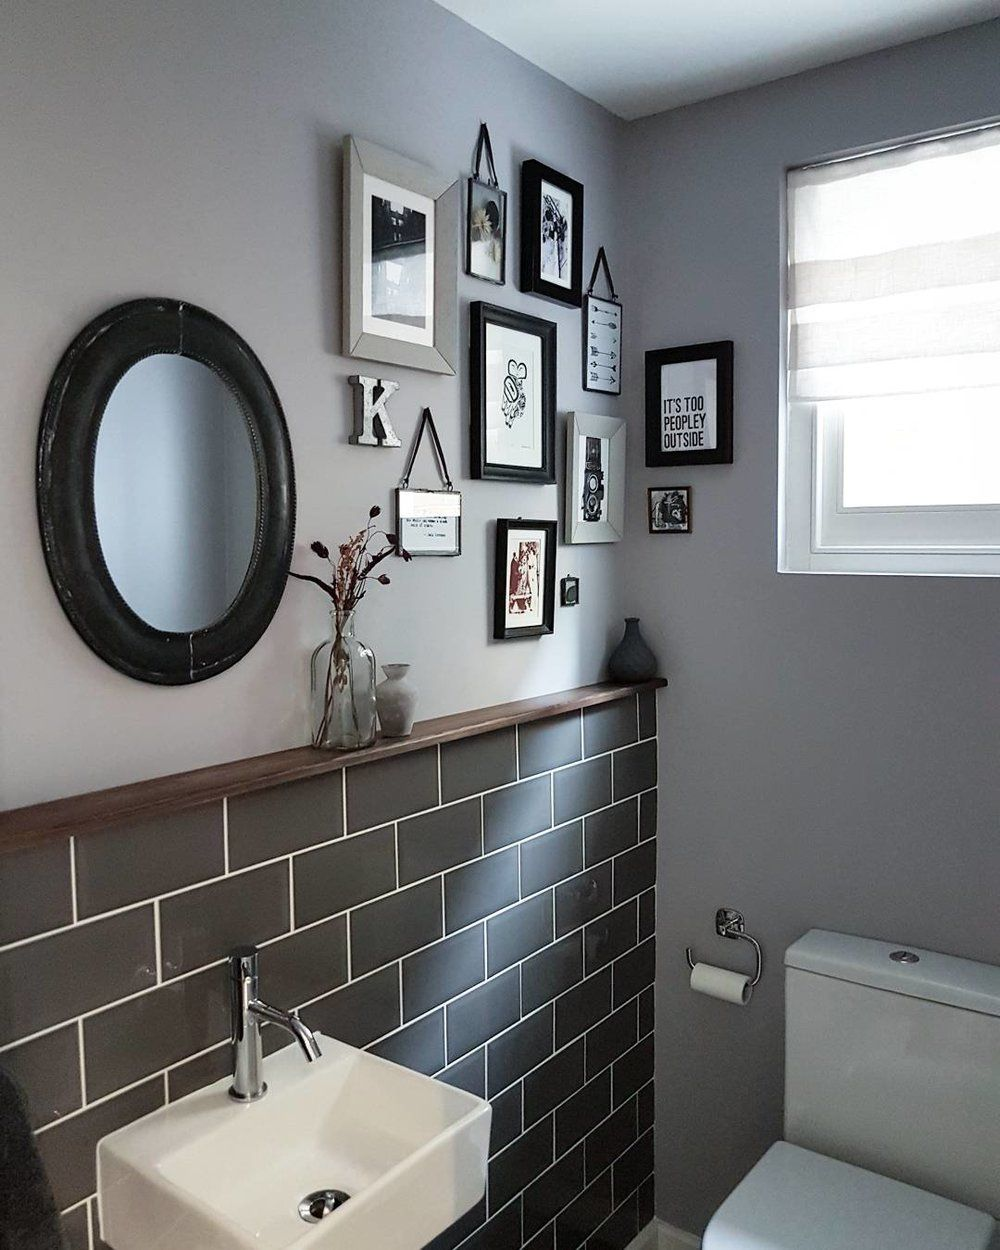 'Sassy Homestyle' Host Kristine's beautifully renovated home. — HORNSBY STYLE #smalltoiletroom